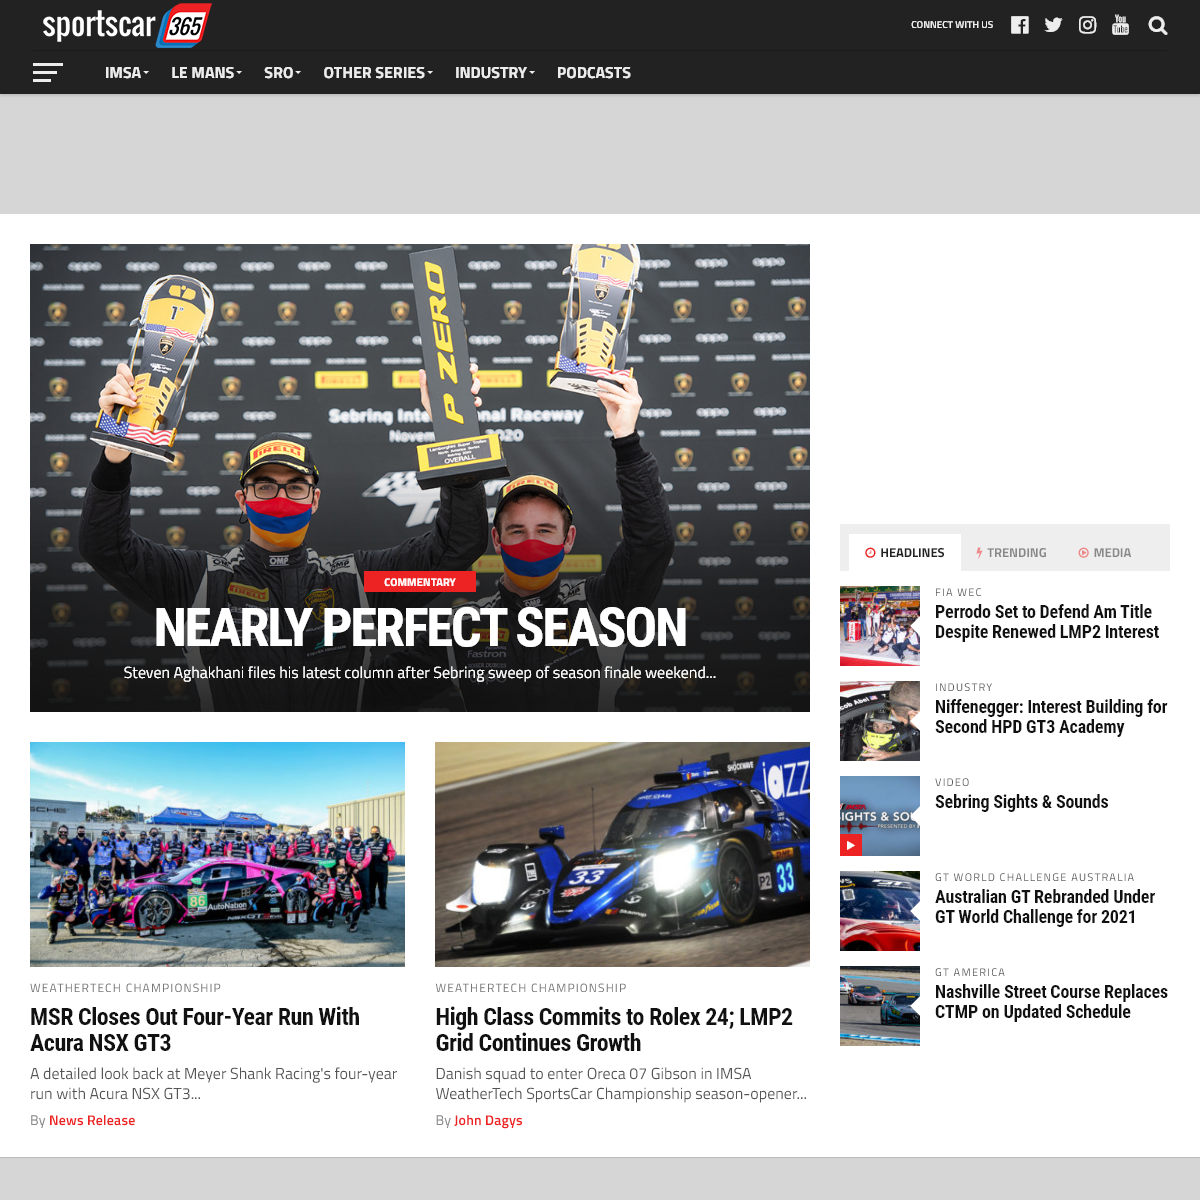 Sportscar365 - The news authority on IMSA, FIA WEC, 24 Hours of Le Mans, GT racing and more!